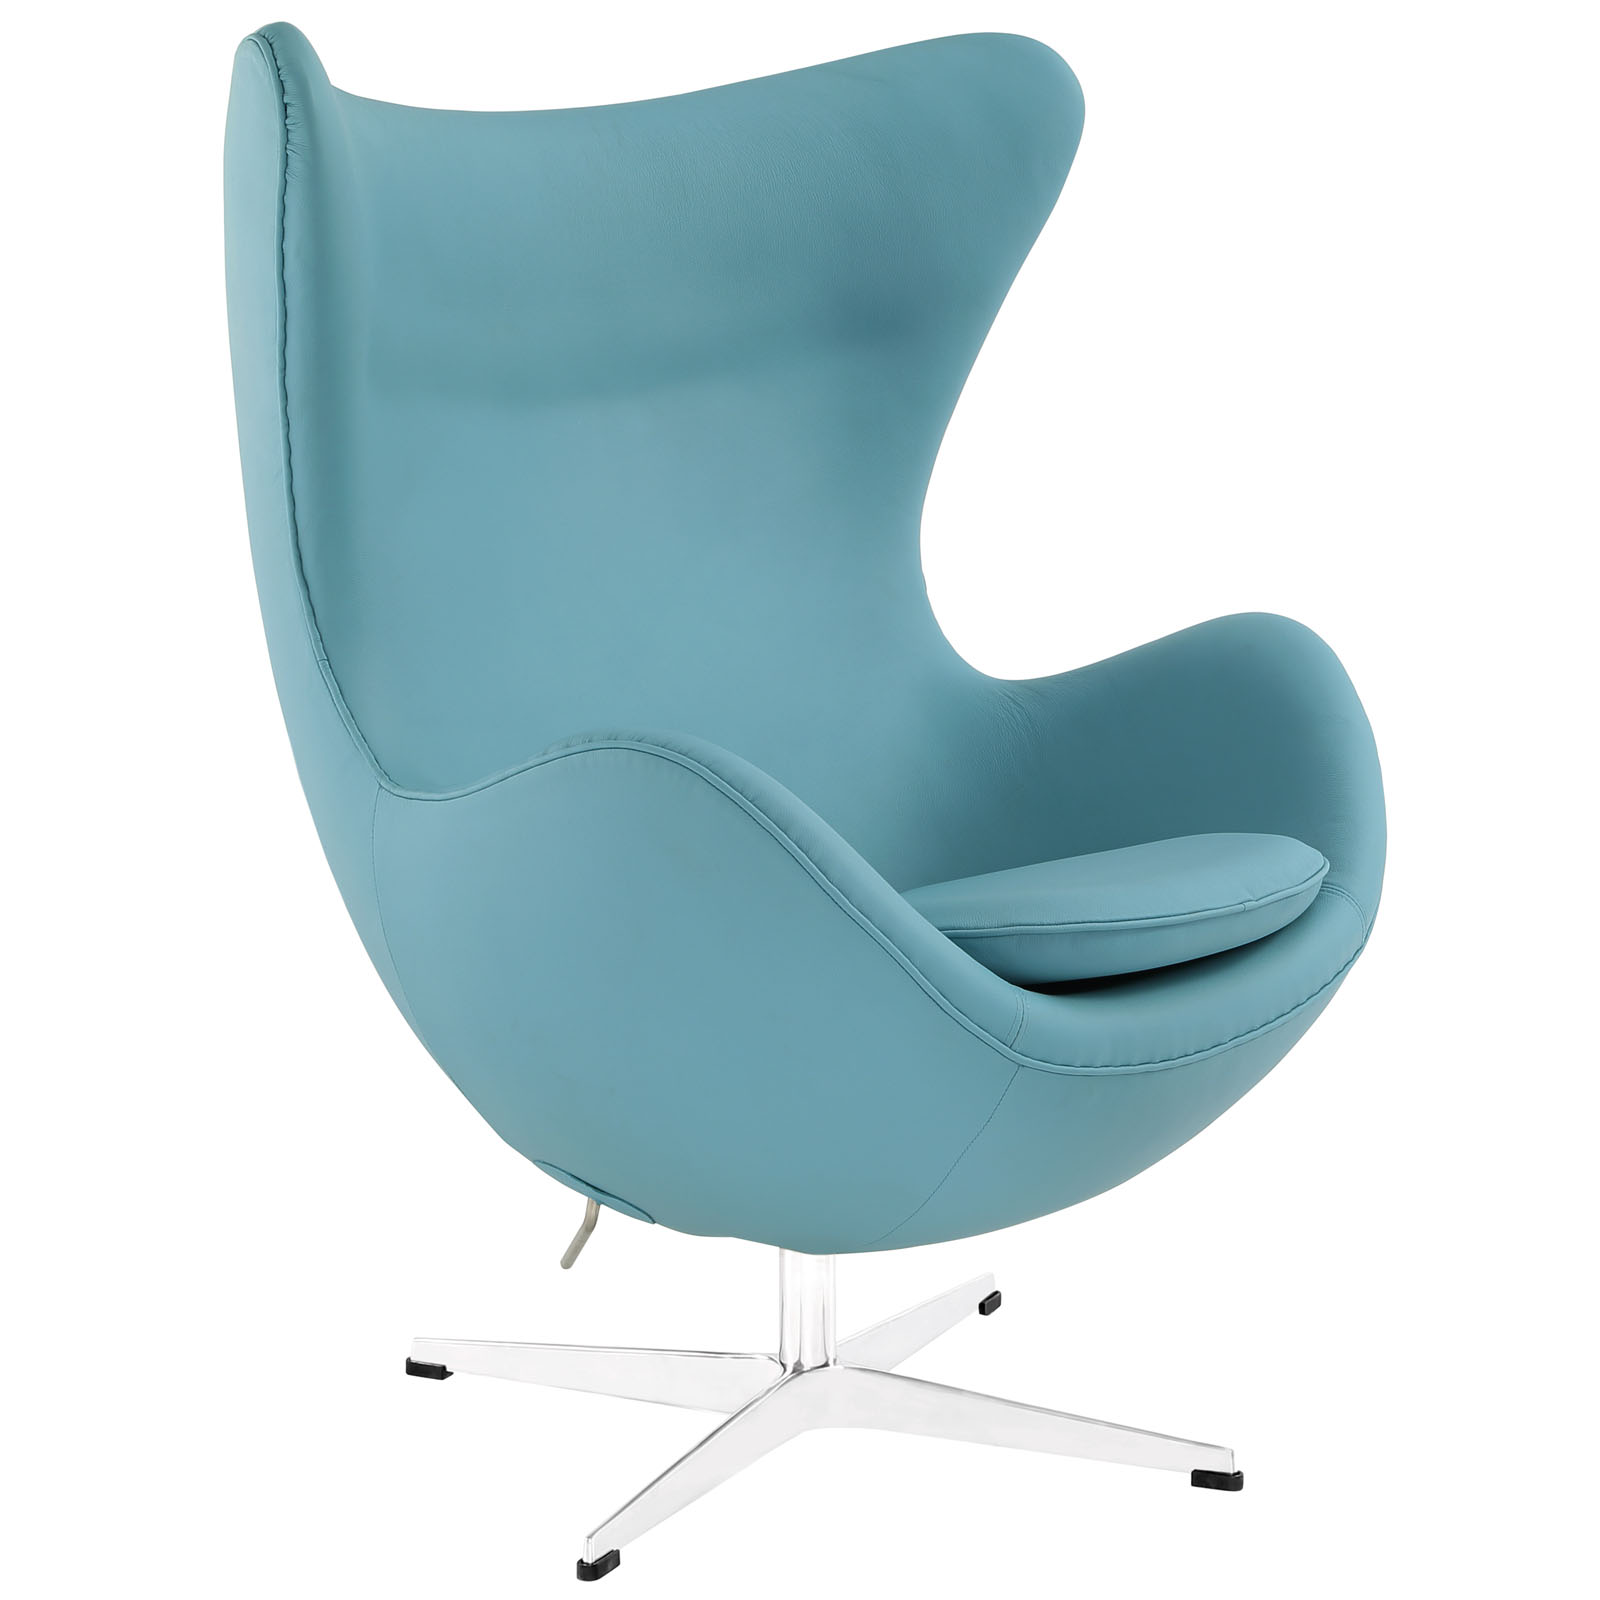 Blue Leather Club Chair Magnum Leather Chair Modern Furniture Brickell Collection